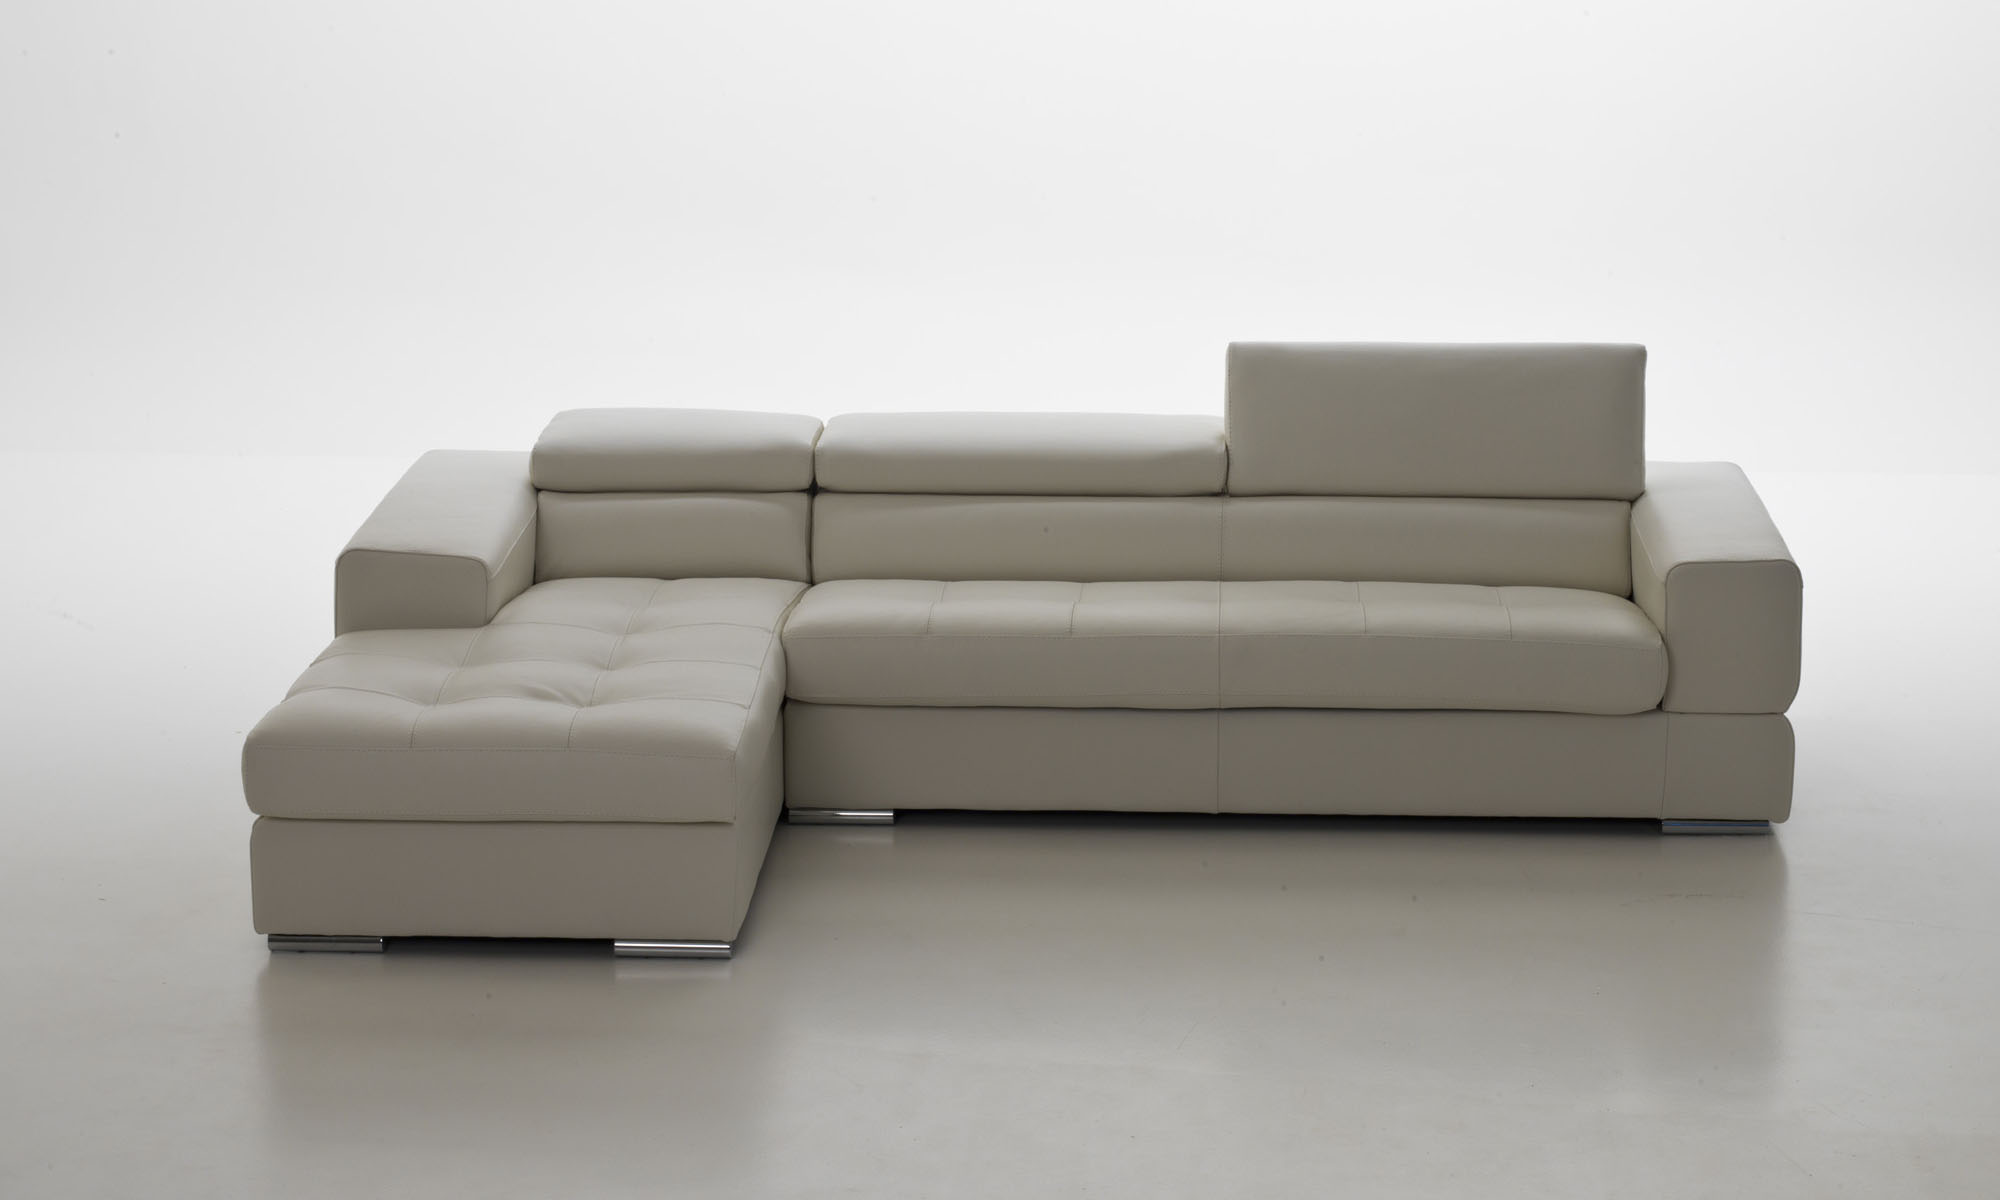 Overnice Sectional Upholstered in Real Leather Flint Michigan